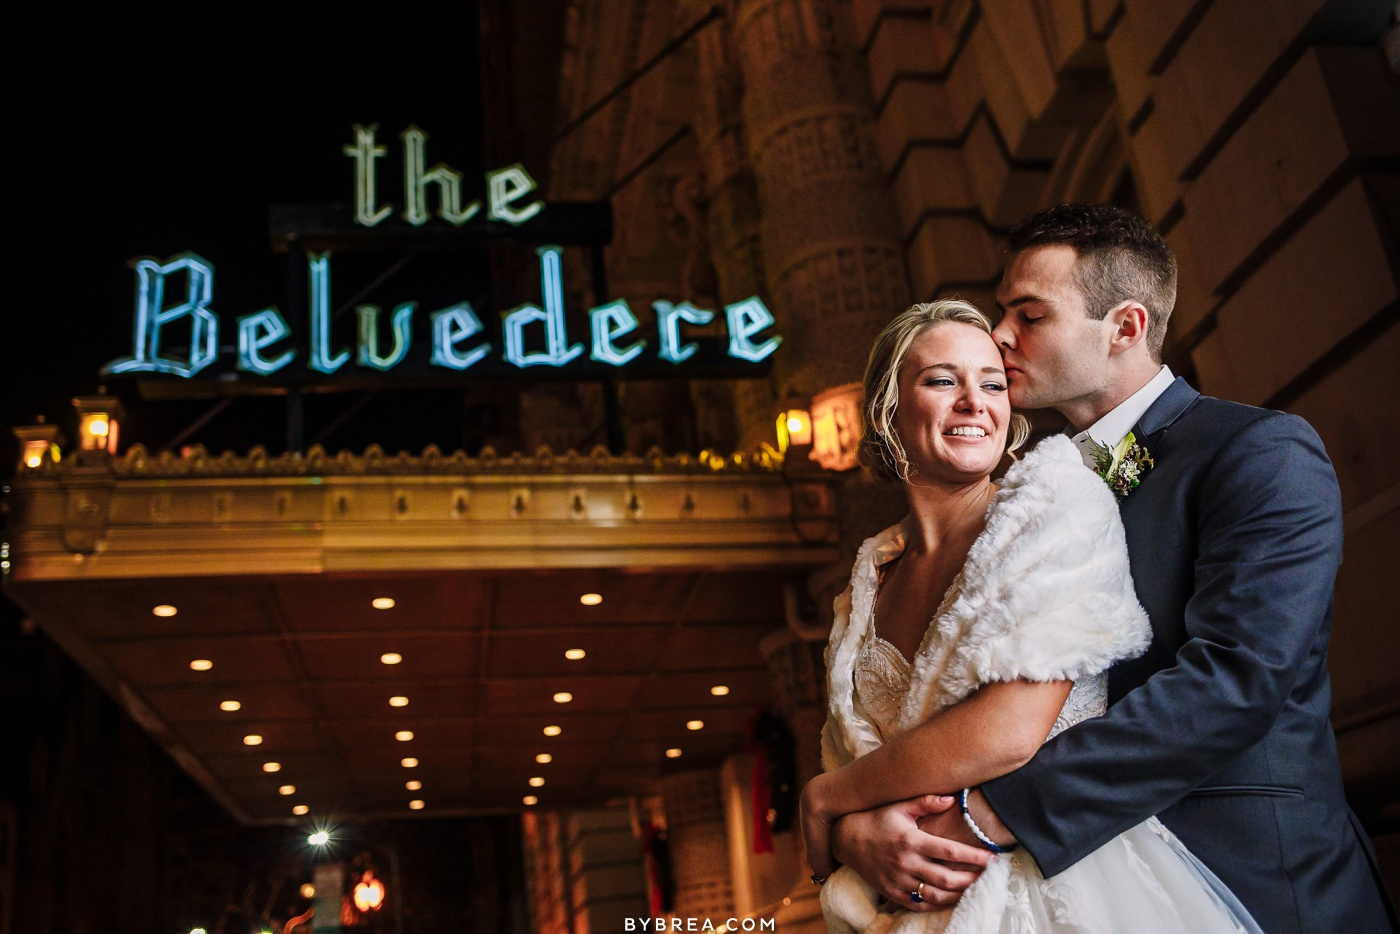 Night time couples portrait during winter wedding at Belvedere Hotel in Baltimore